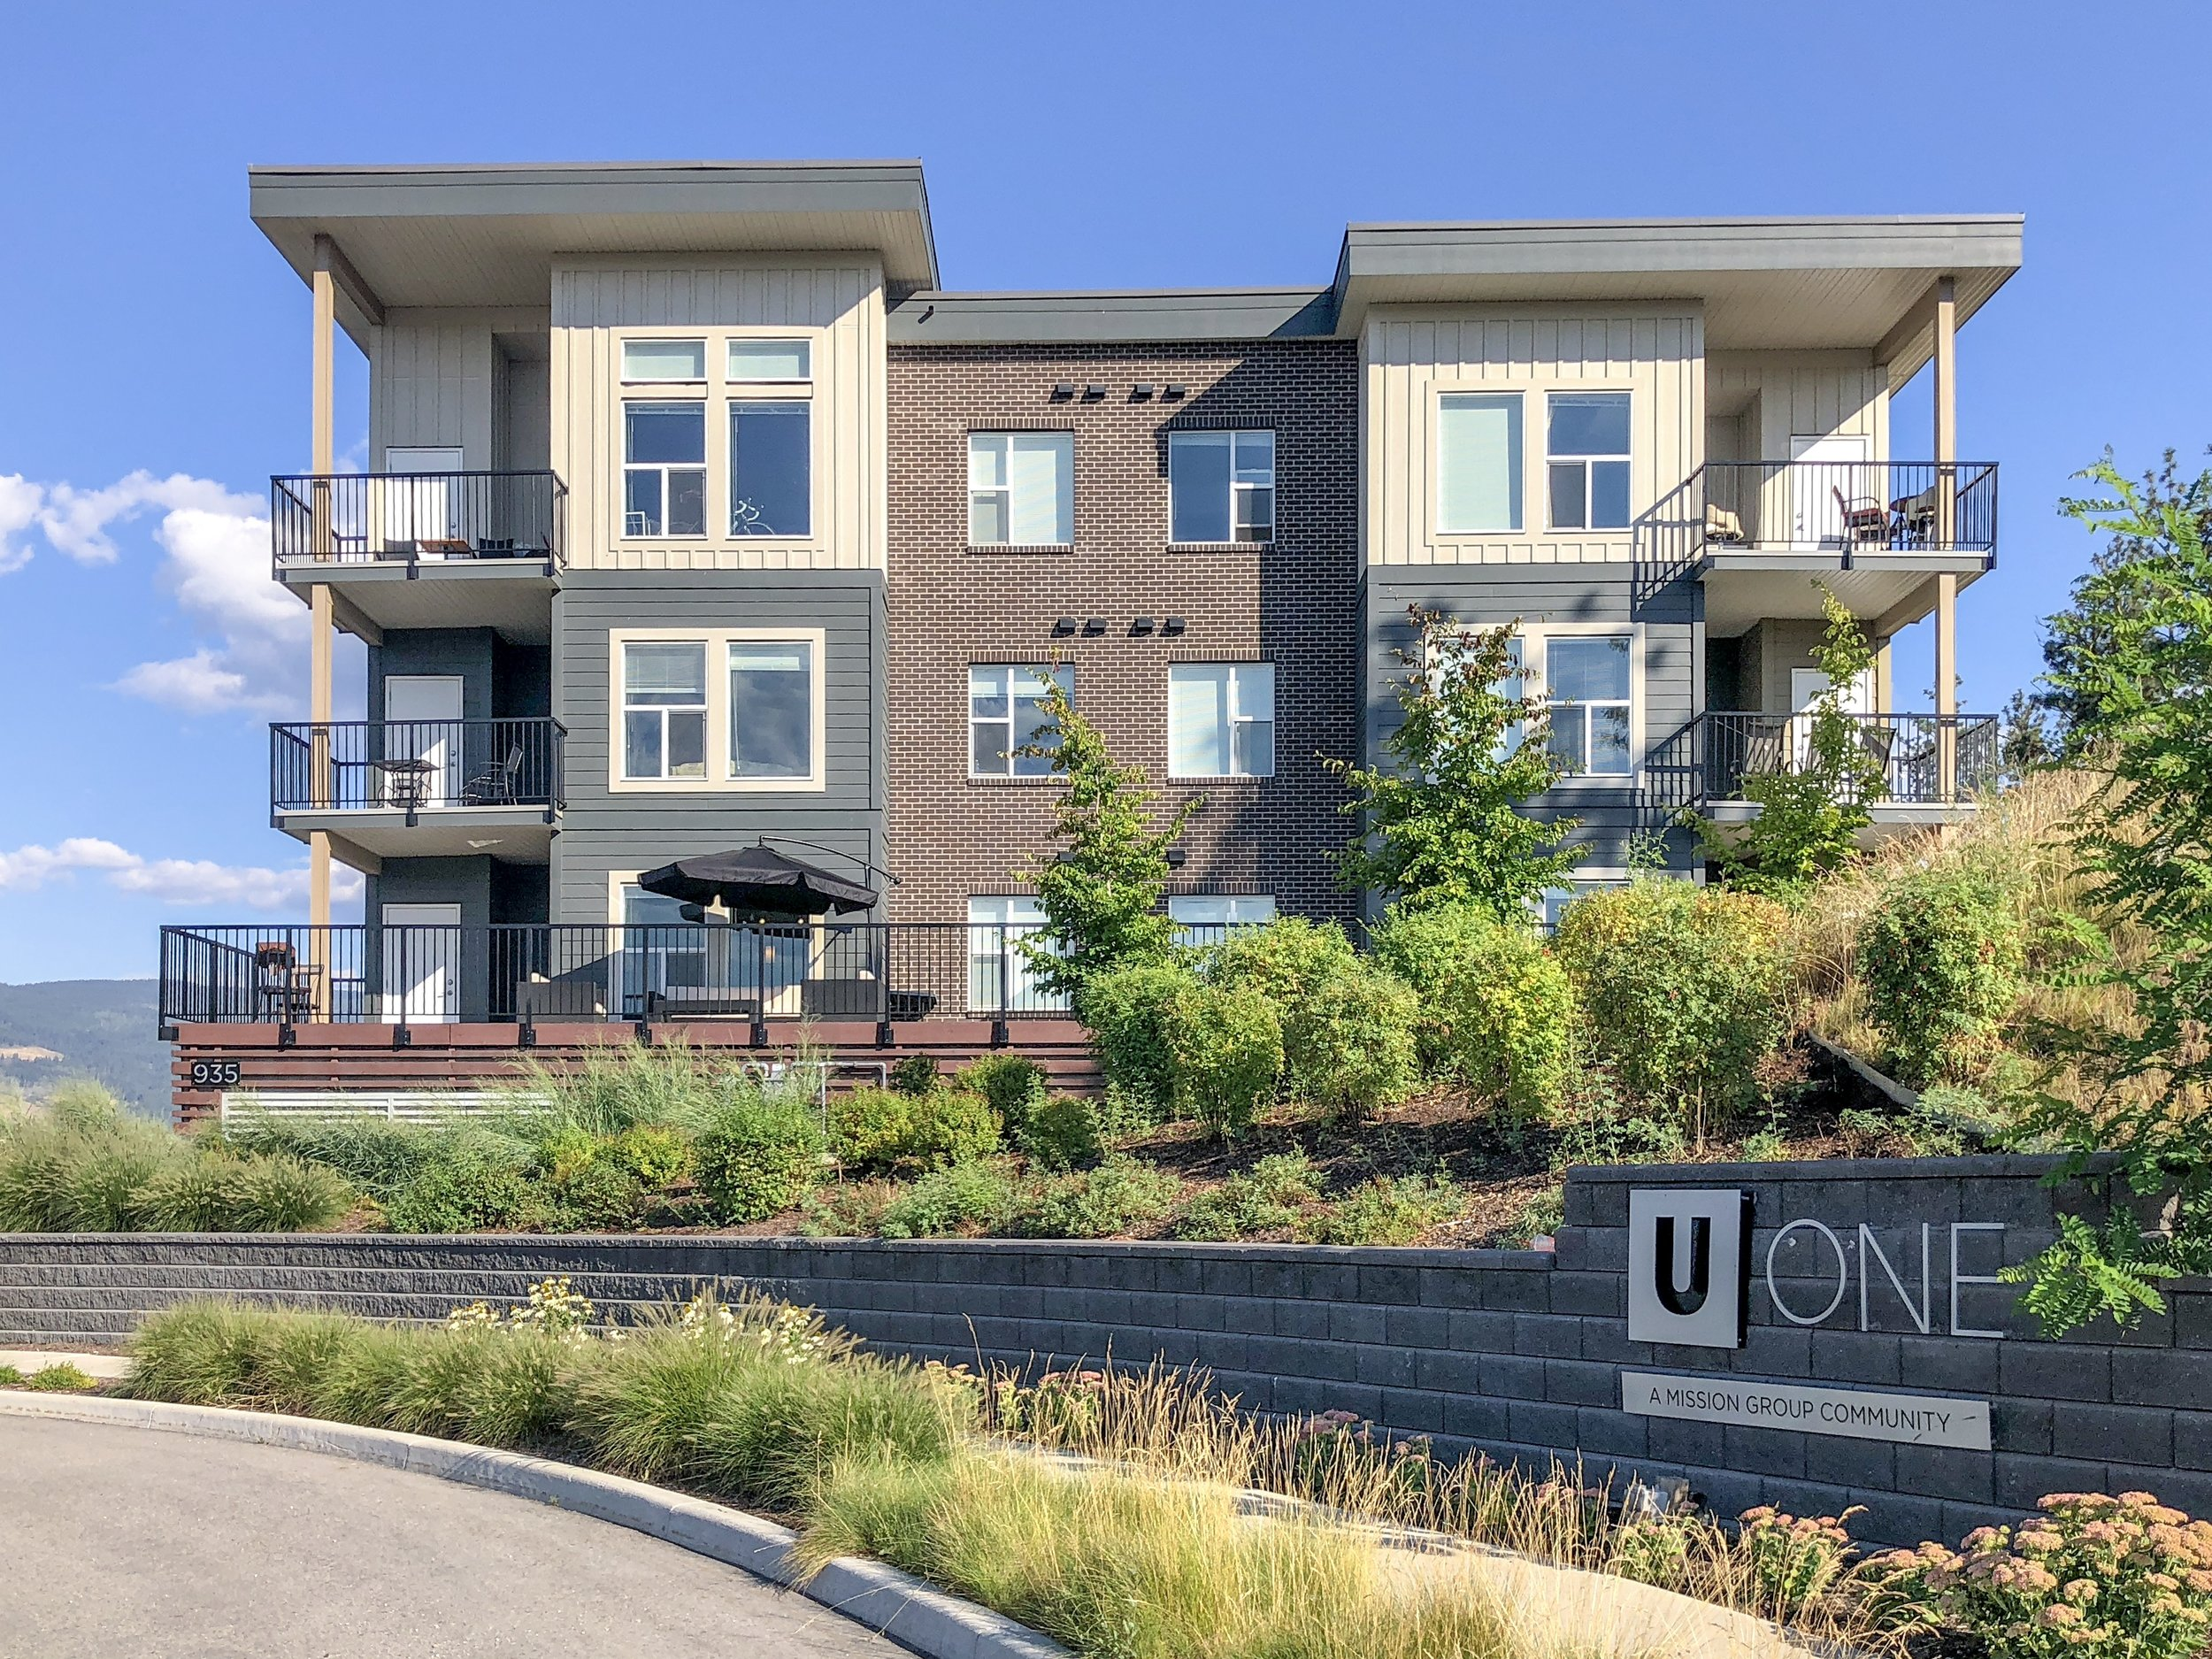 u-one-ubco-01-kelowna-property-investment.jpg